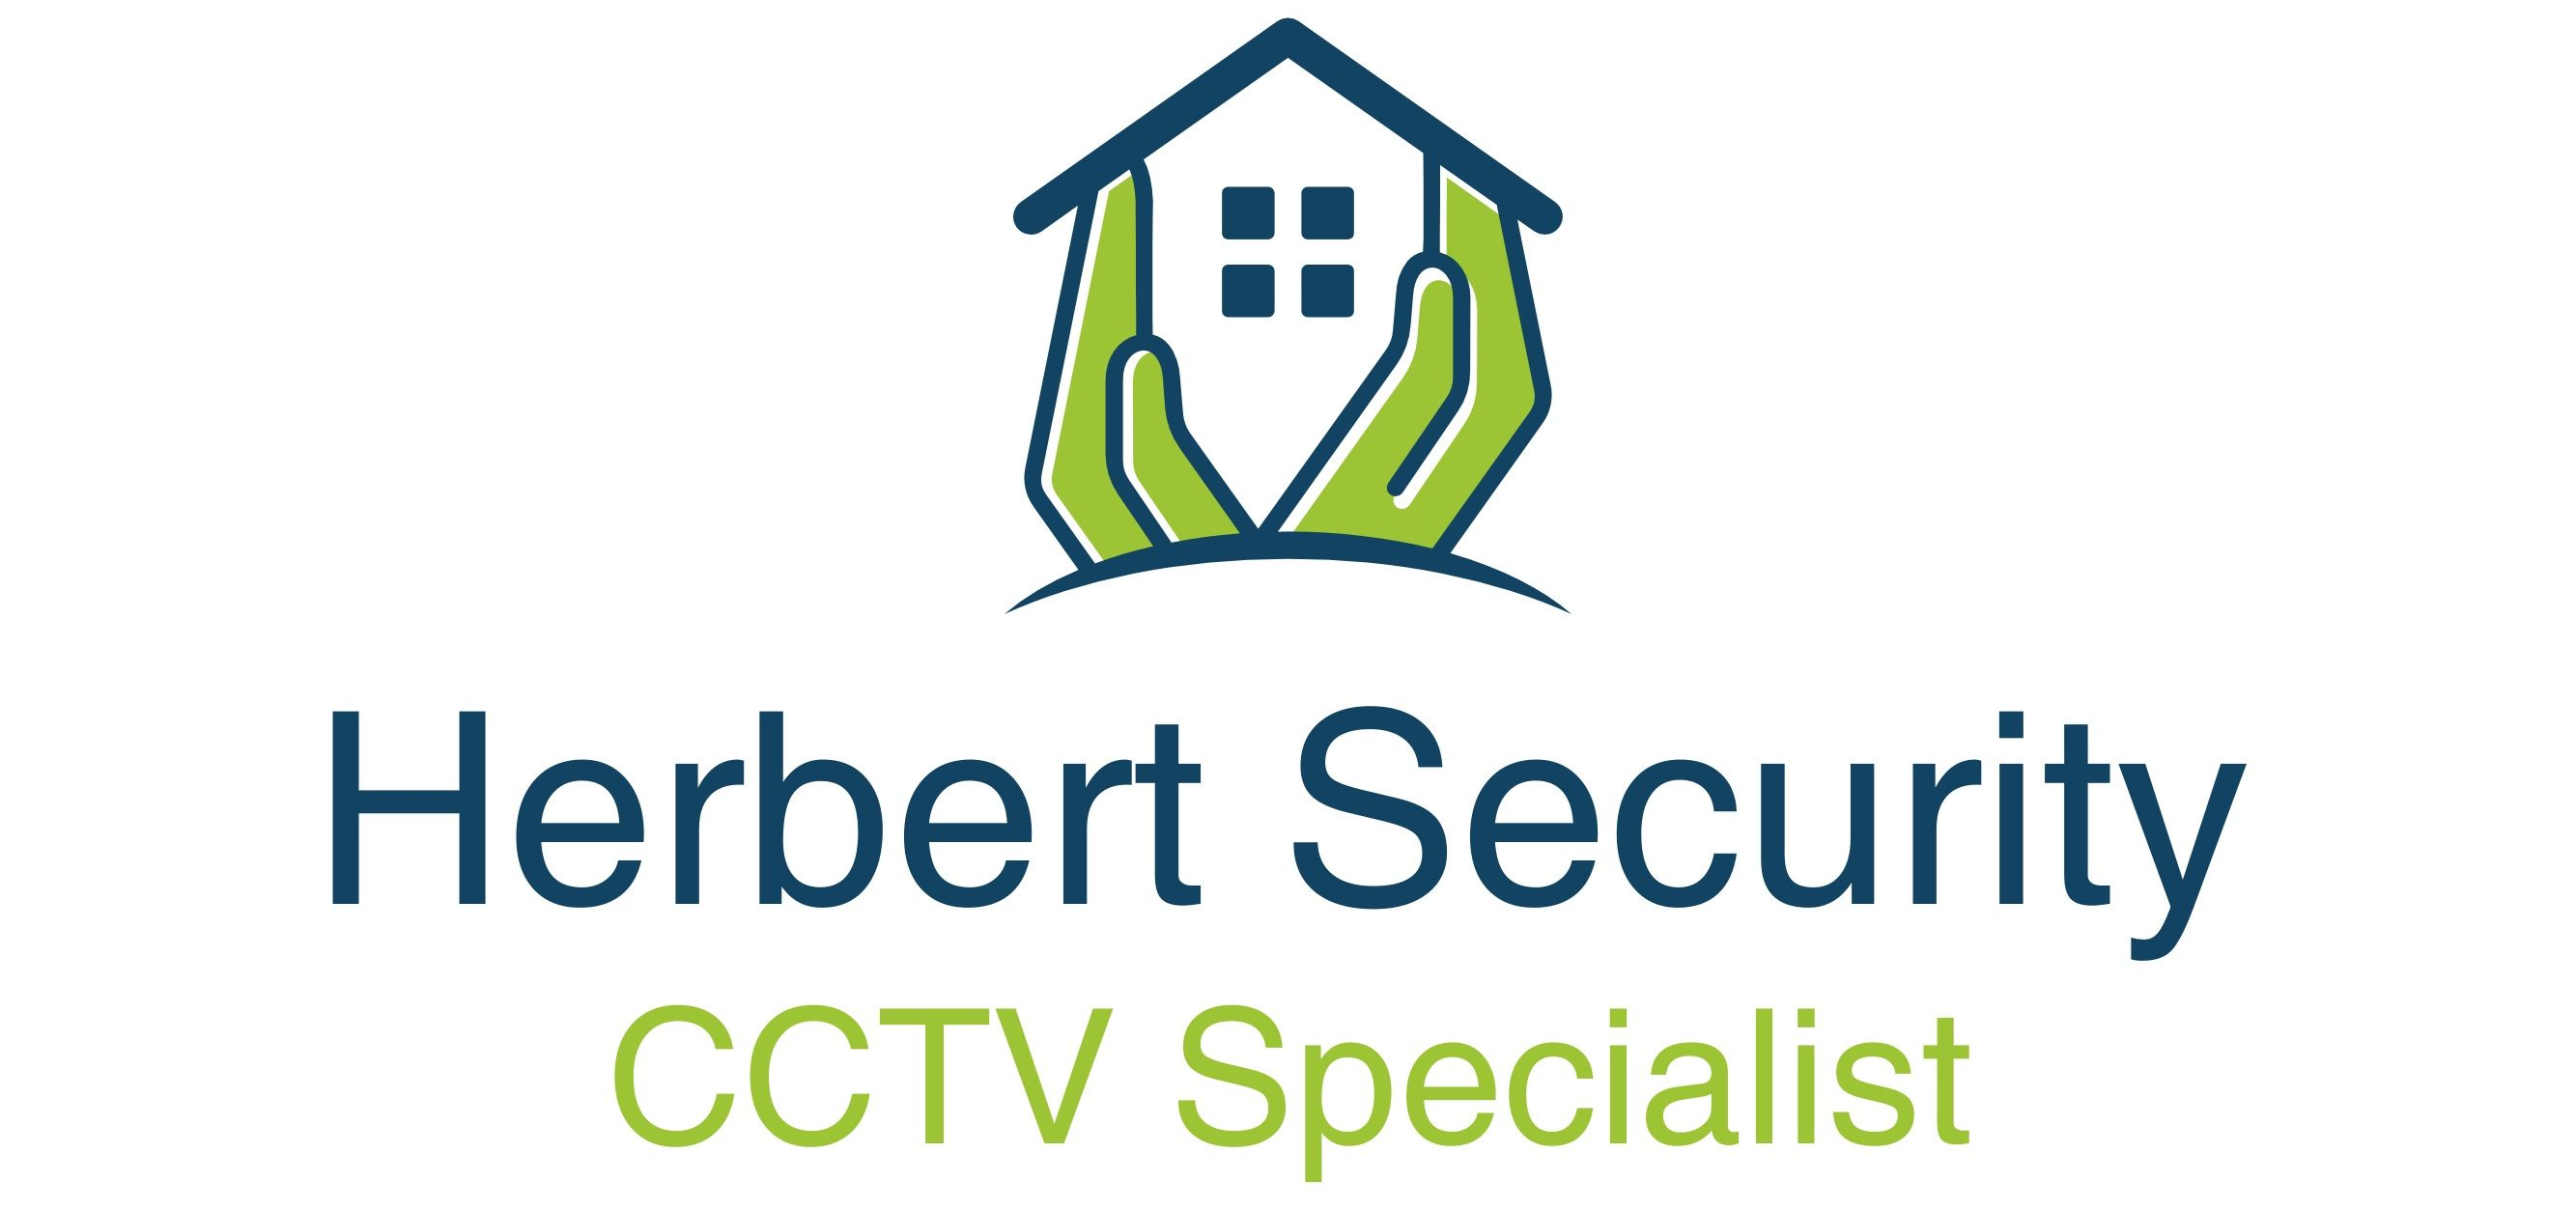 Herbert security CCTV specialist